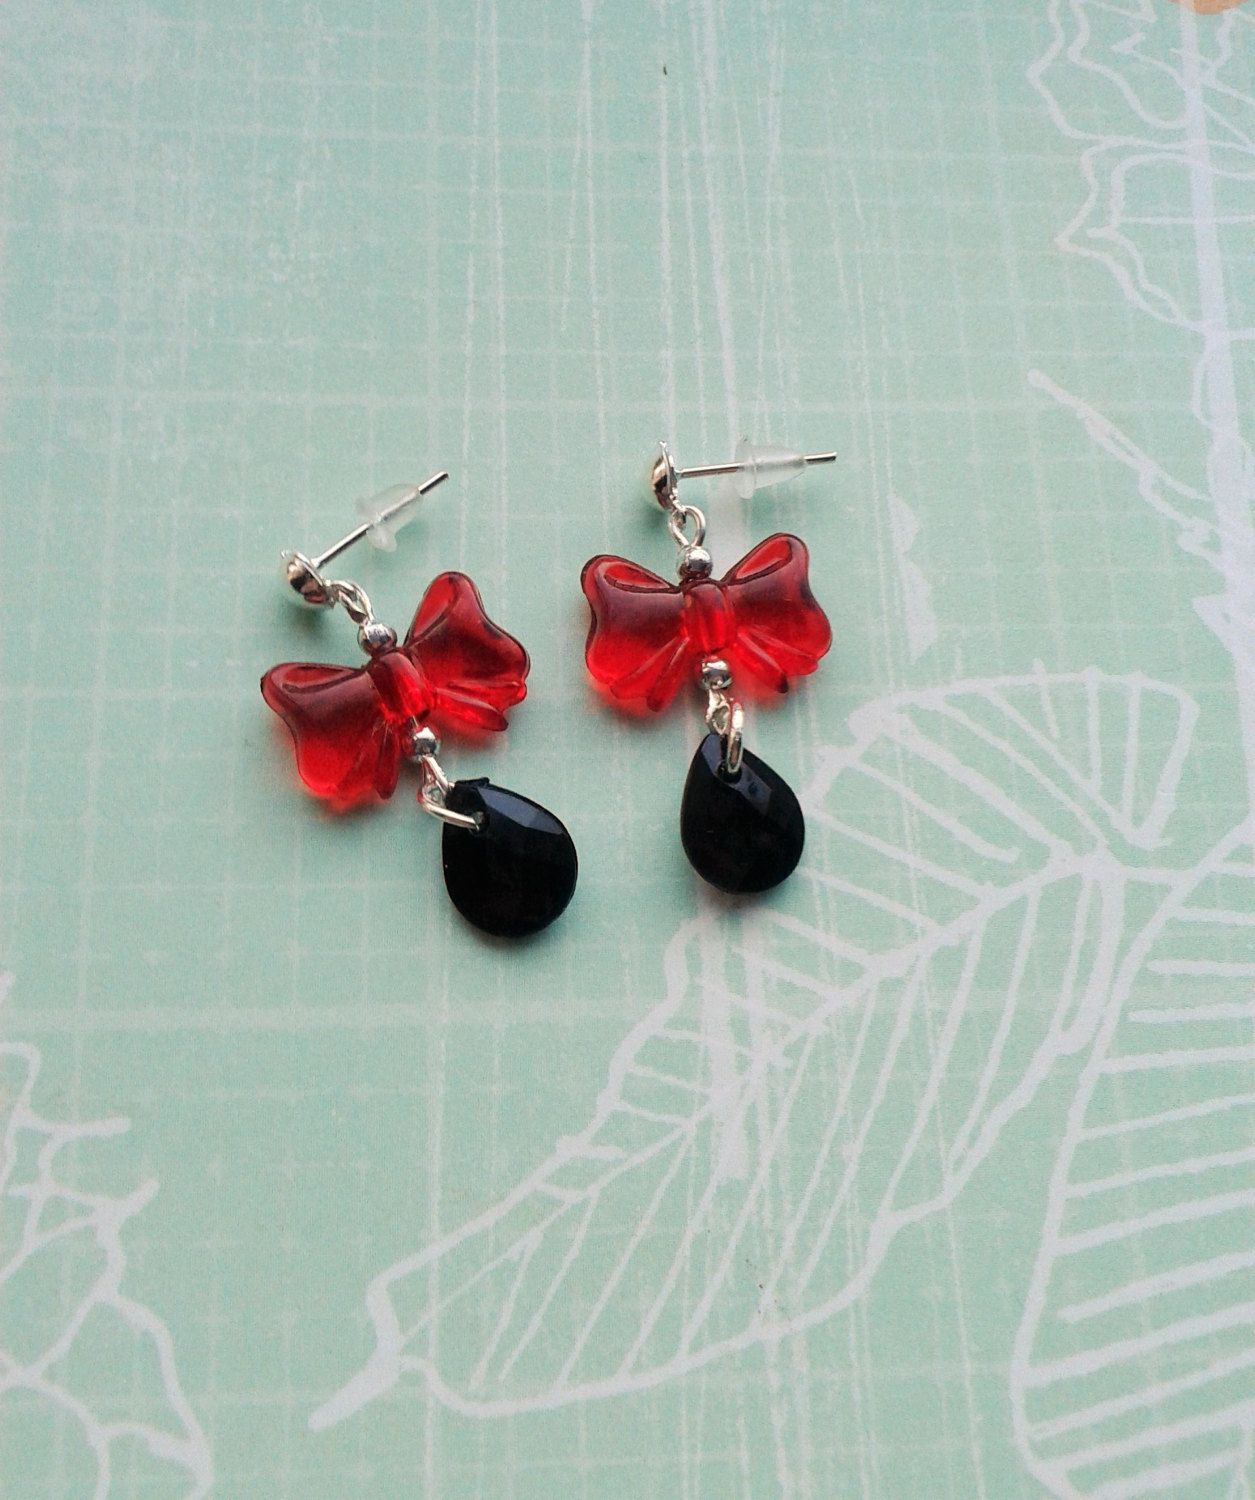 Rockabilly Earrings, Red Bow and Black Drop Earrings,Kitsch Drops,Costume Jewelry,Cute Accessories,Lucite Jewelry,Pin Up Style Drop Earrings by RosieMays on Etsy